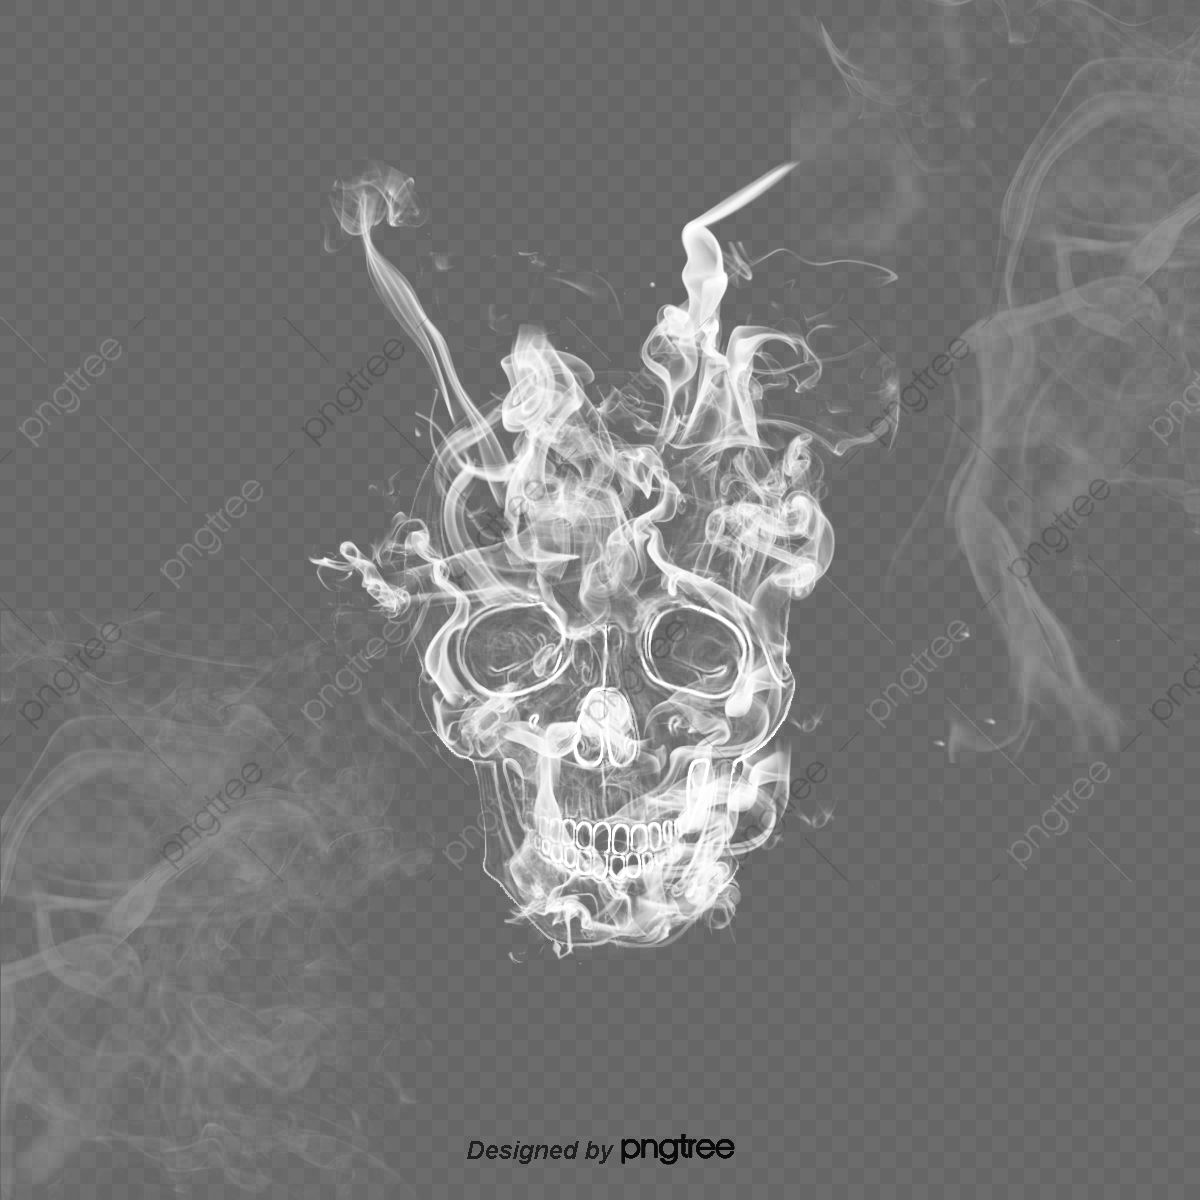 Skeleton White Bone Shape Smoke Elements Element Smoke White Smoke Png Transparent Clipart Image And Psd File For Free Download Floral Background Clip Art Shapes